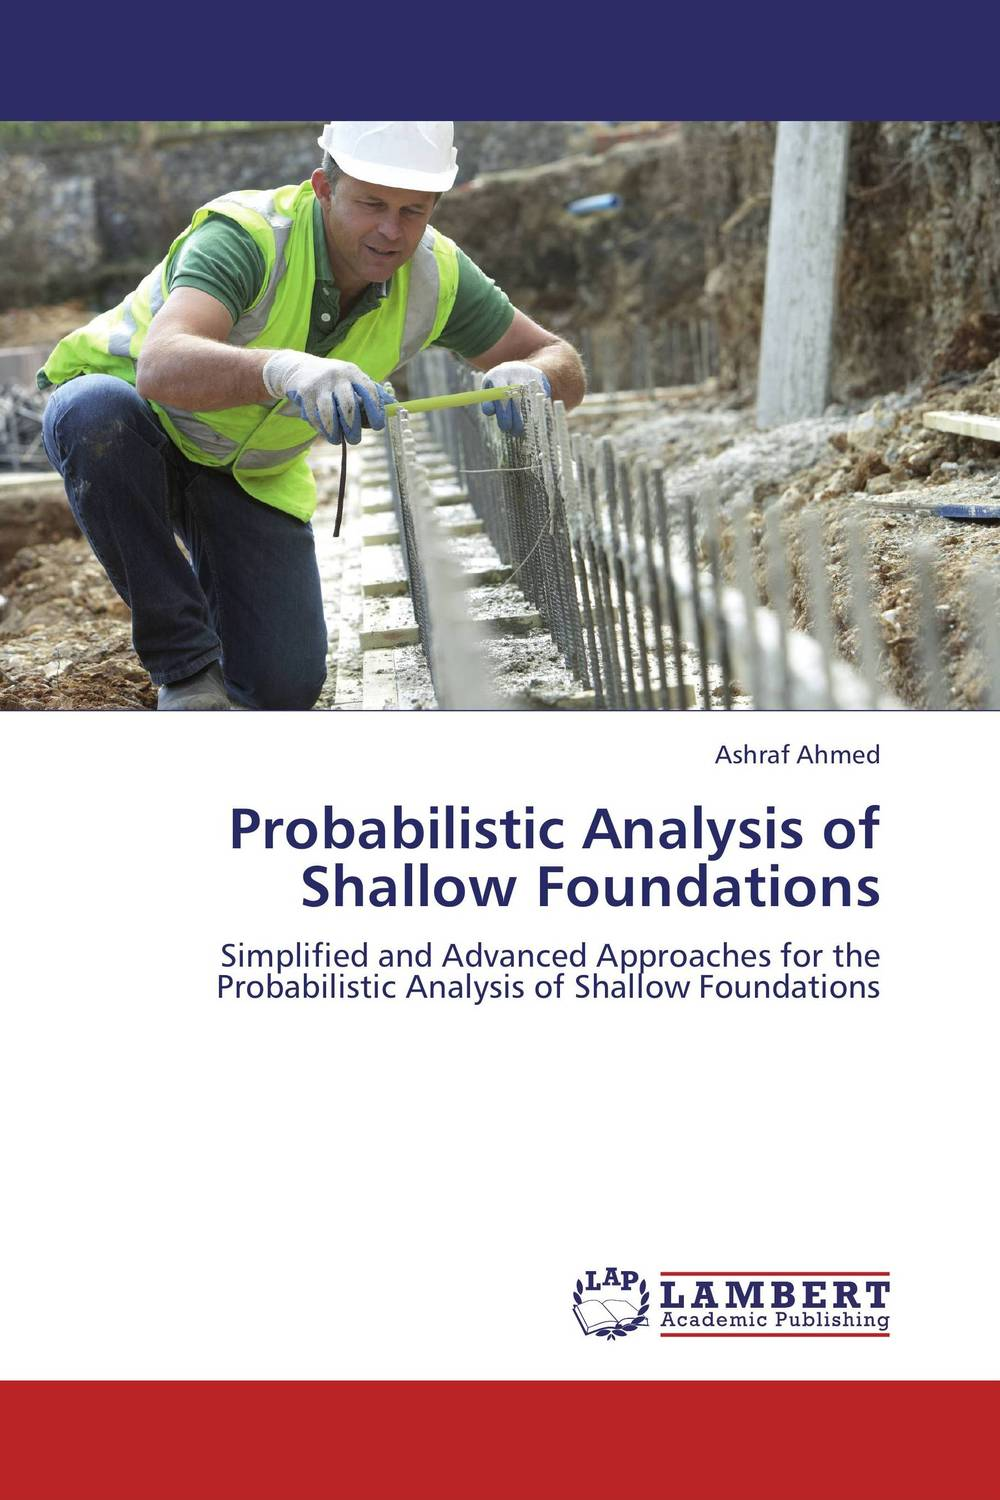 Probabilistic Analysis of Shallow Foundations analysis of pharmaceuticals in wastewater and their photodegradation